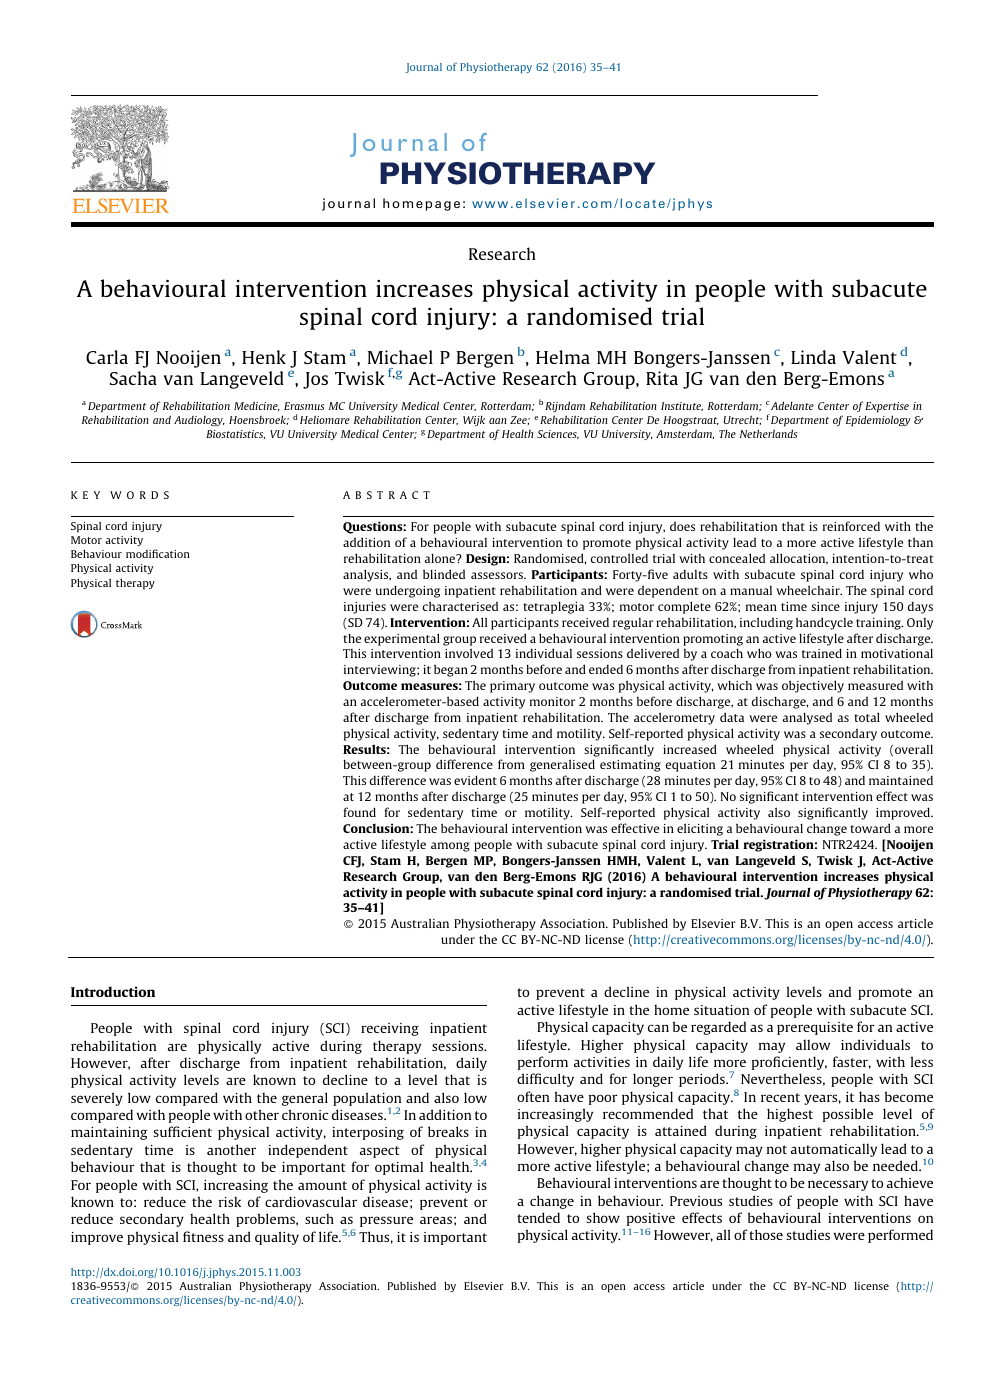 A behavioural intervention increases physical activity in